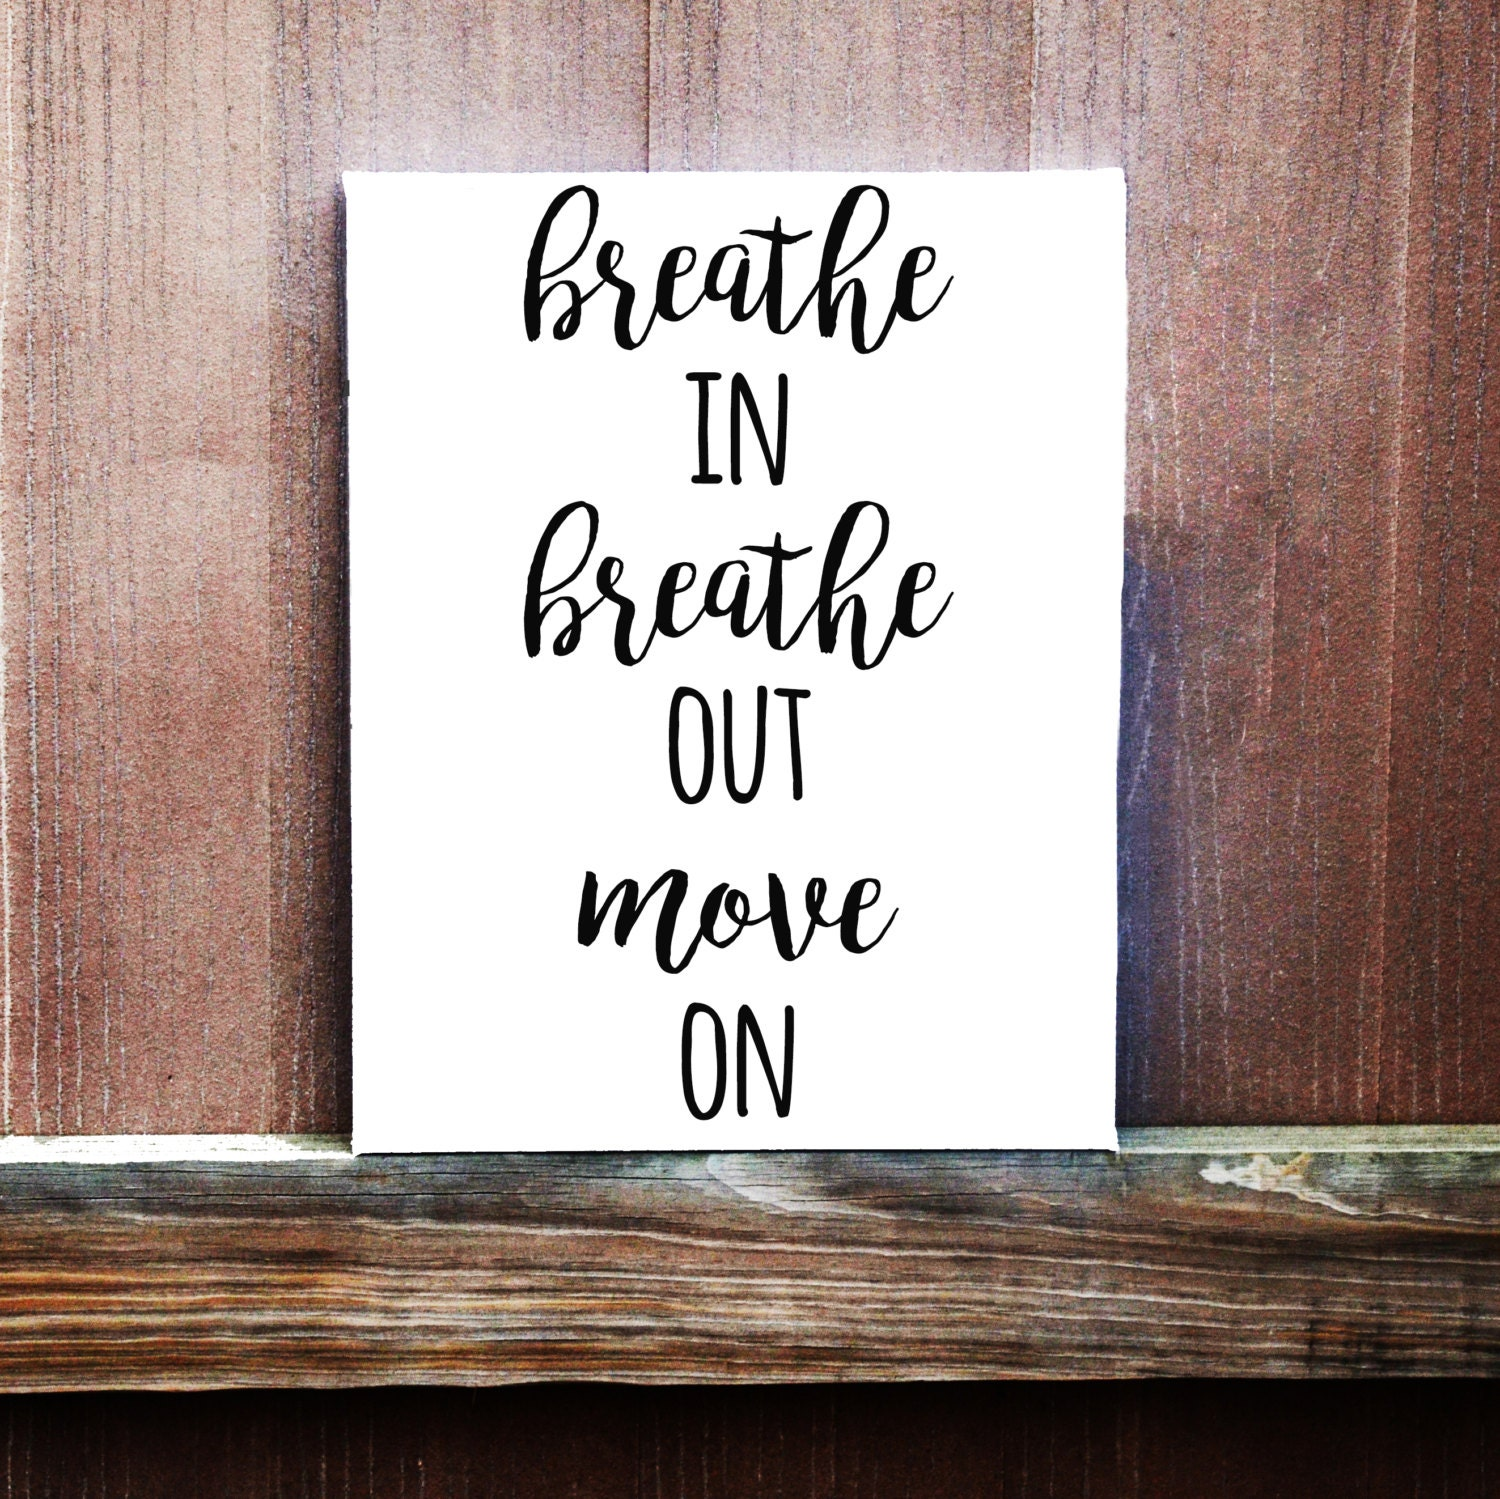 Breathe In Breathe Out Move On Hand Painted Canvas Multiple